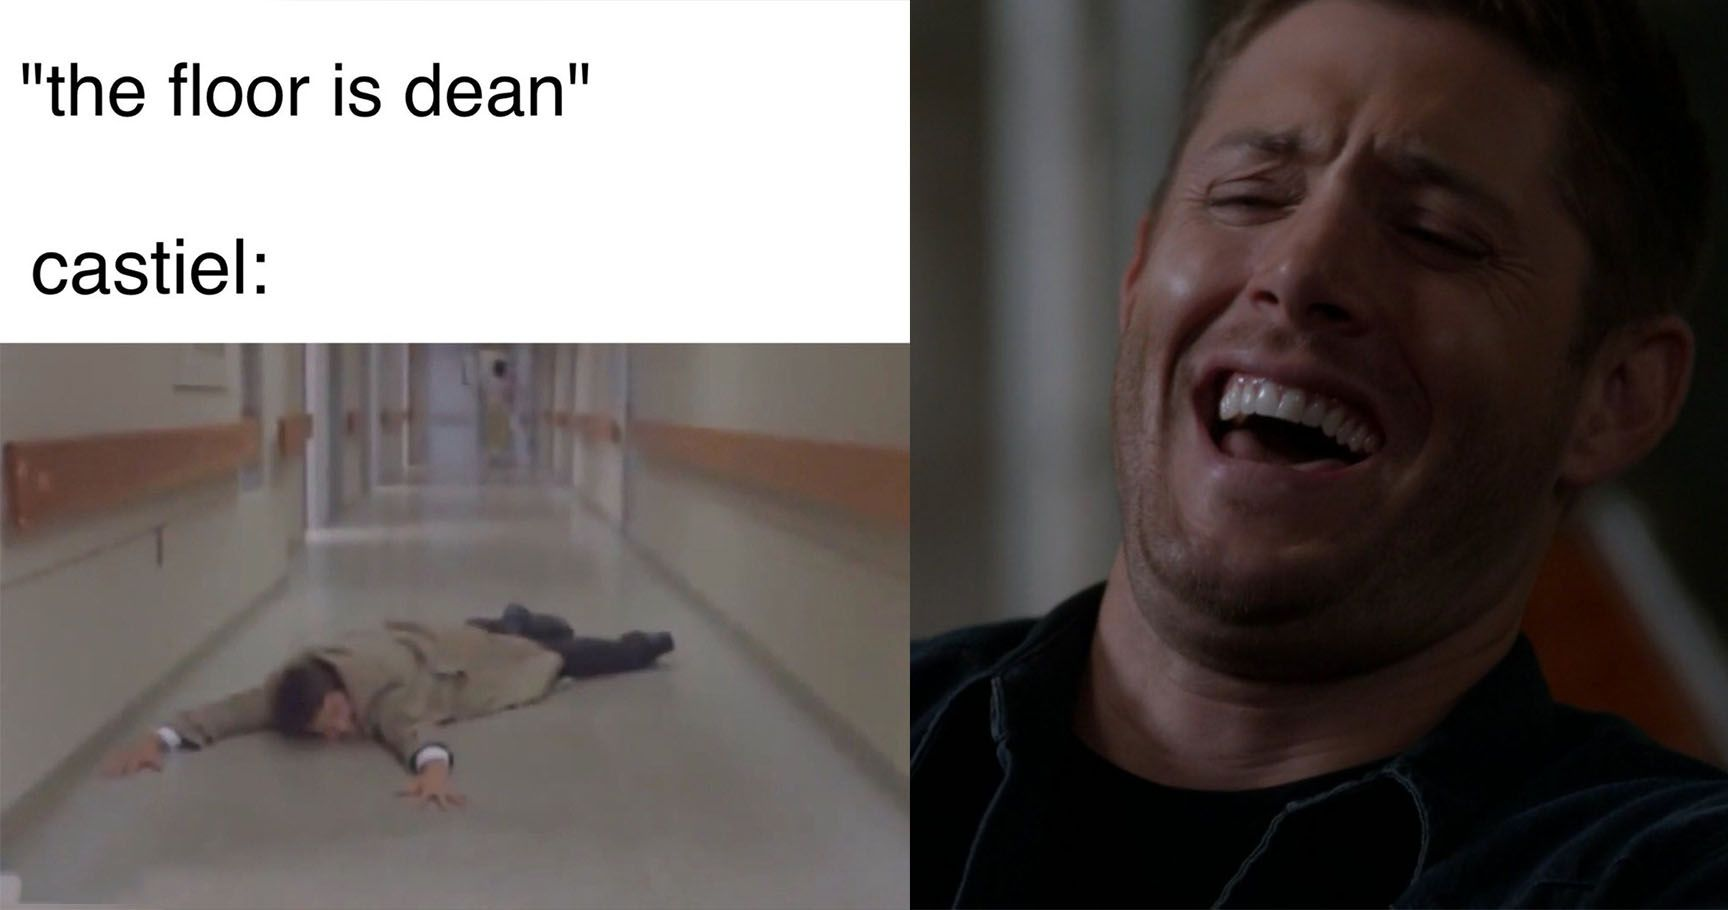 15 Totally Inappropriate 'Supernatural' Memes That Will Make You Nod Your Head